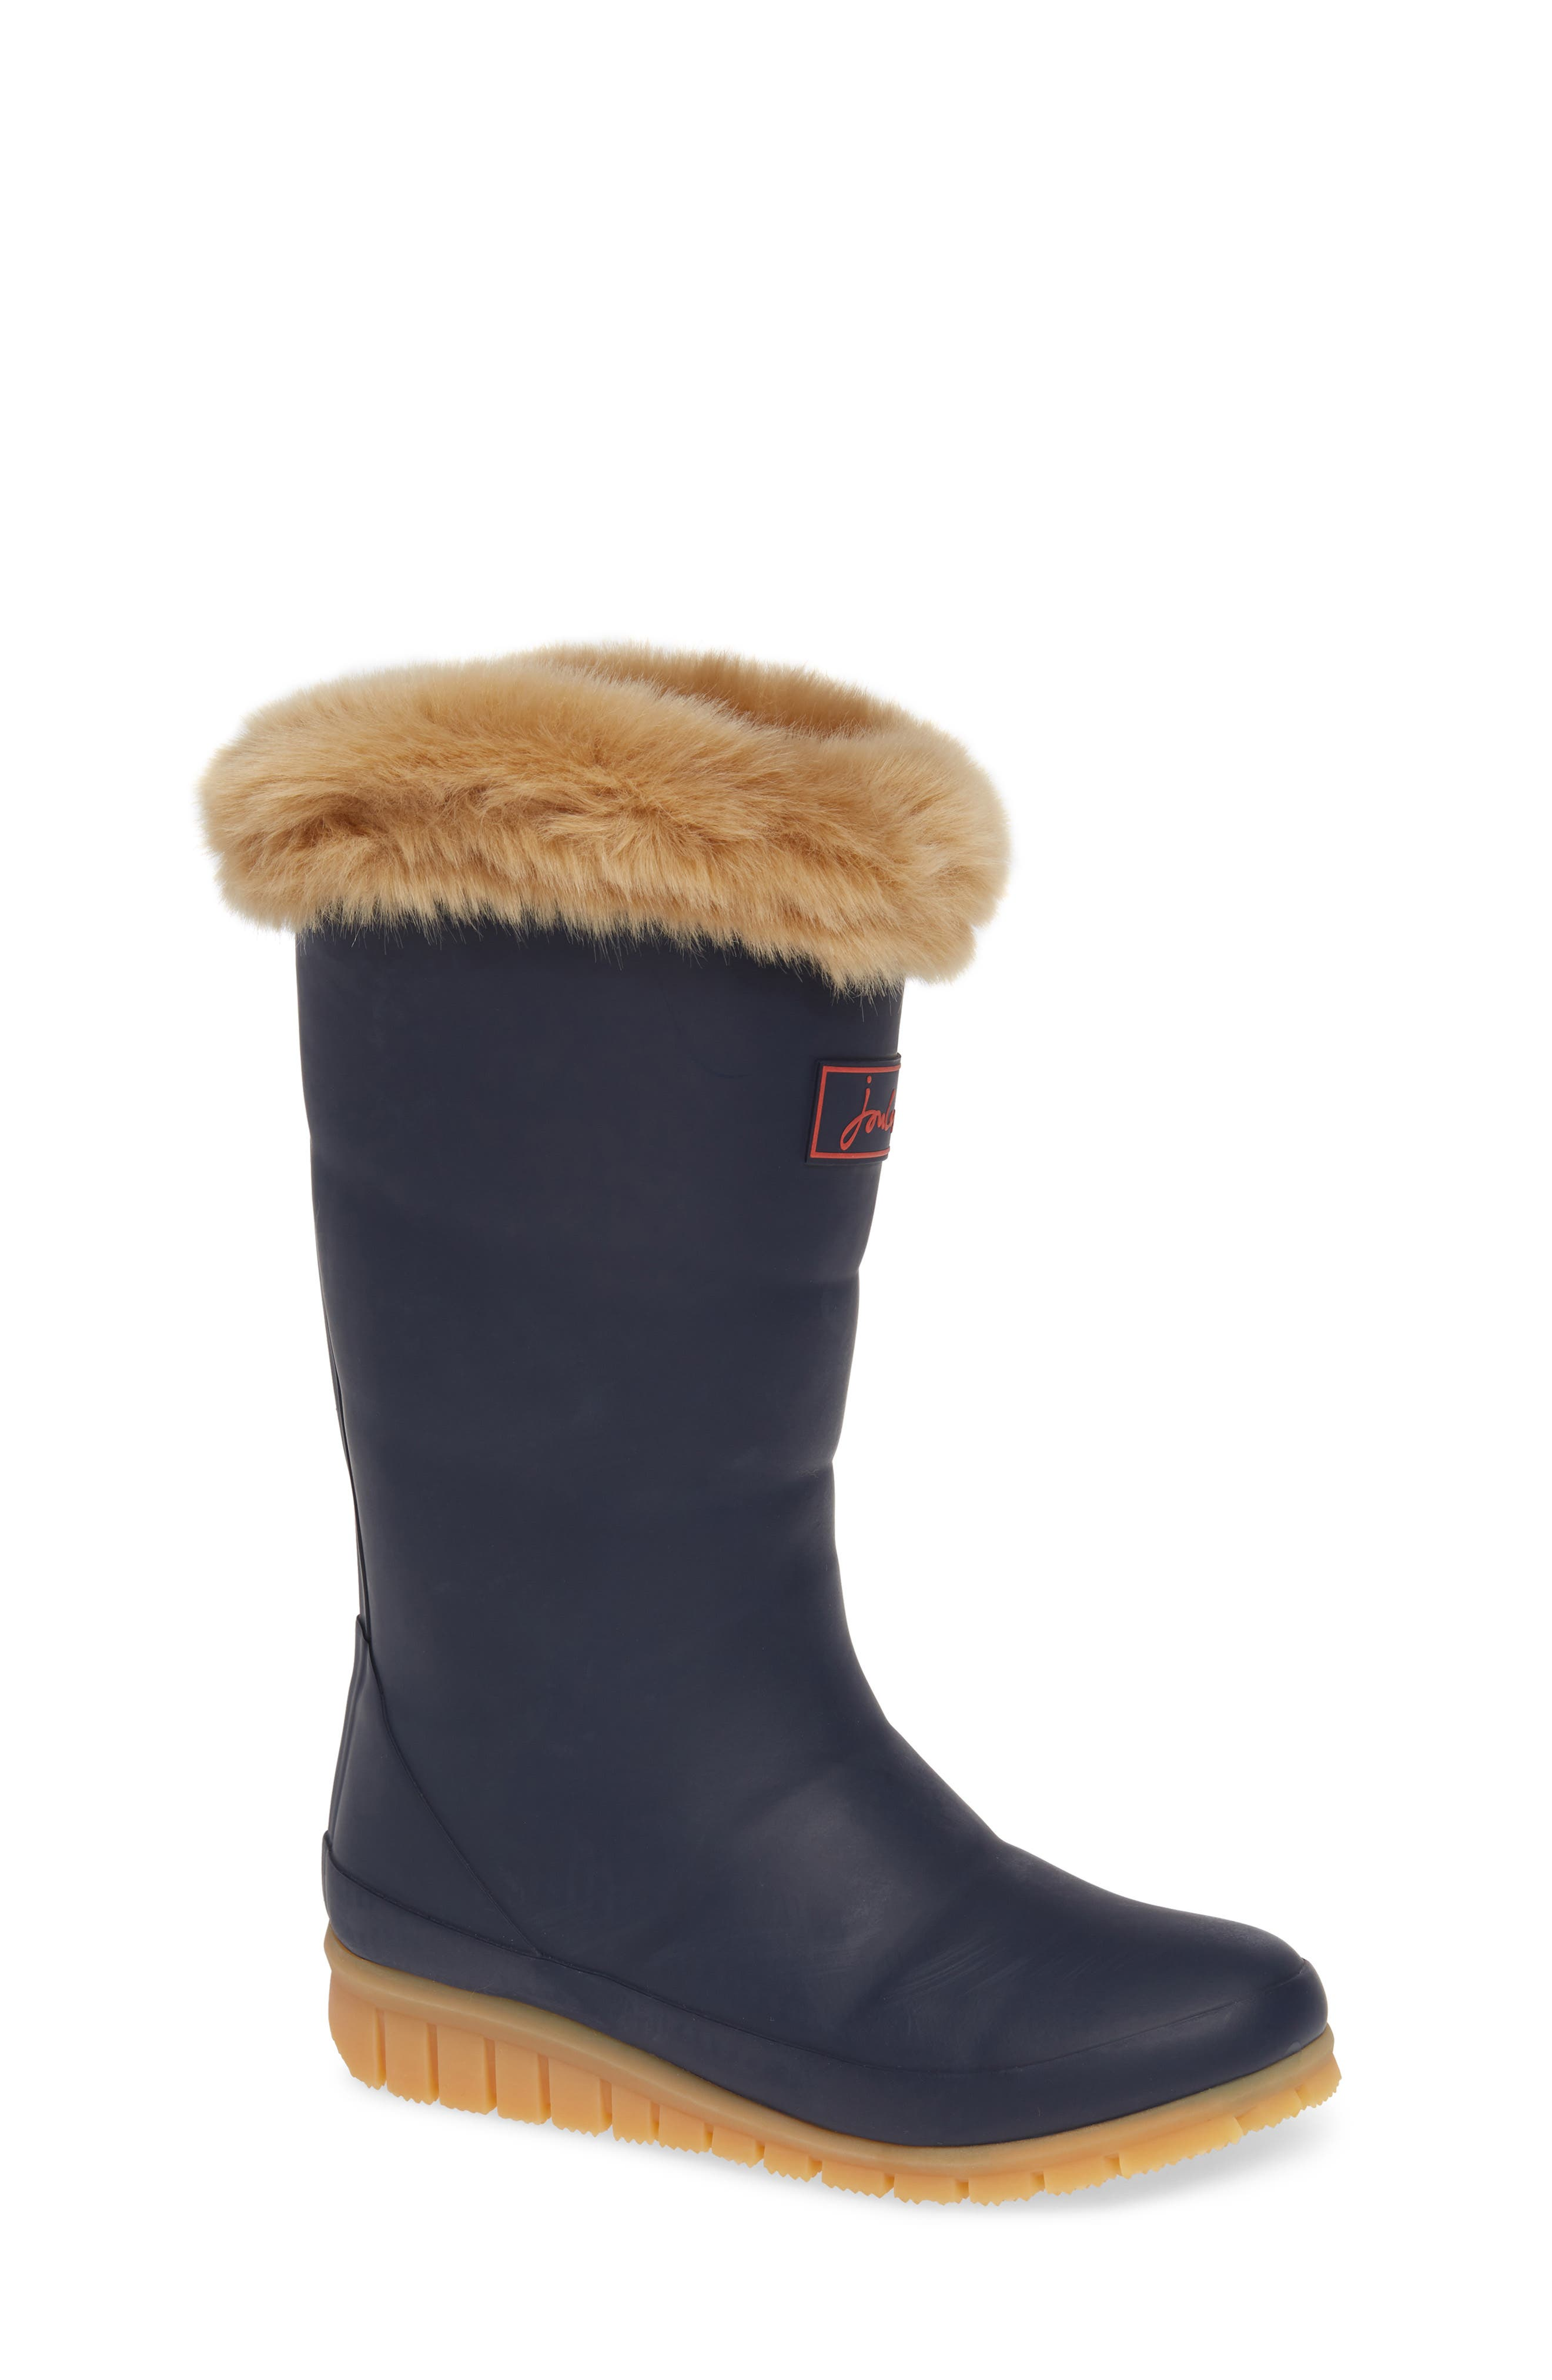 Padded Welly Waterproof Rain Boot with Faux Fur Trim,                             Main thumbnail 1, color,                             FRENCH NAVY